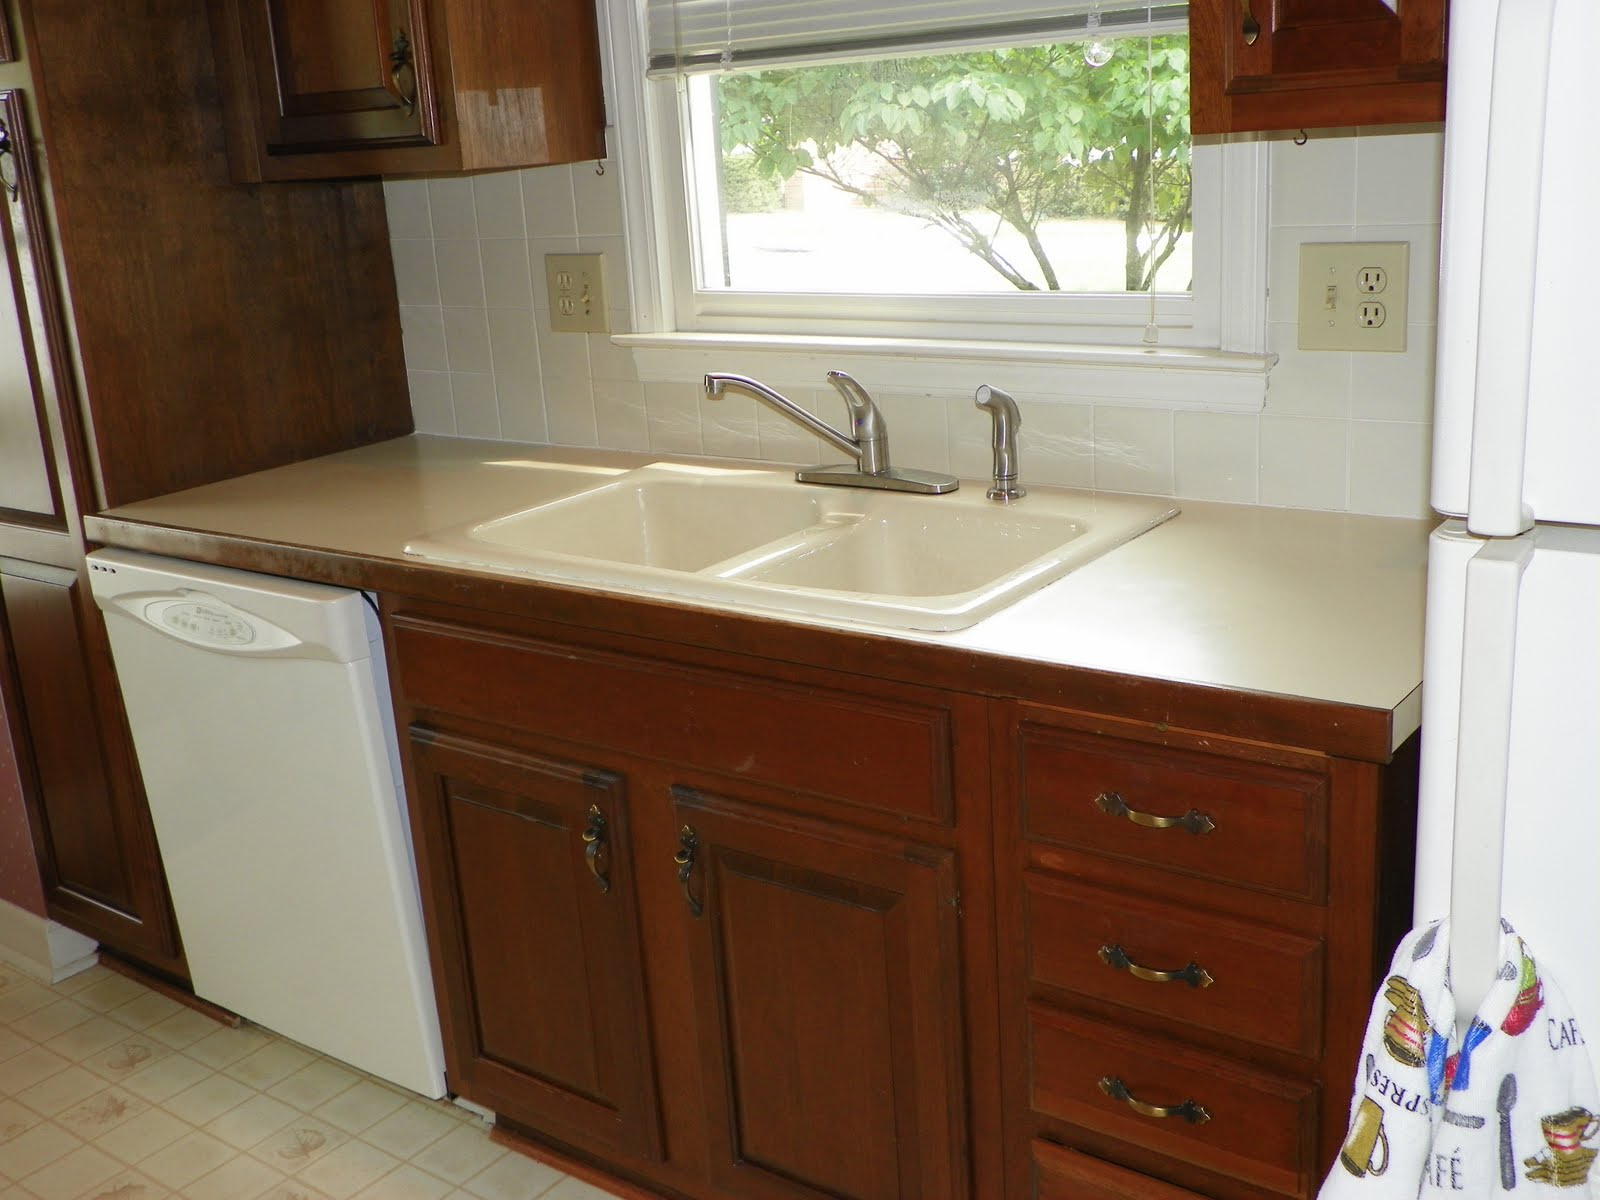 corian kitchen countertops pantry drawer systems the solid surface and stone countertop repair blog retro